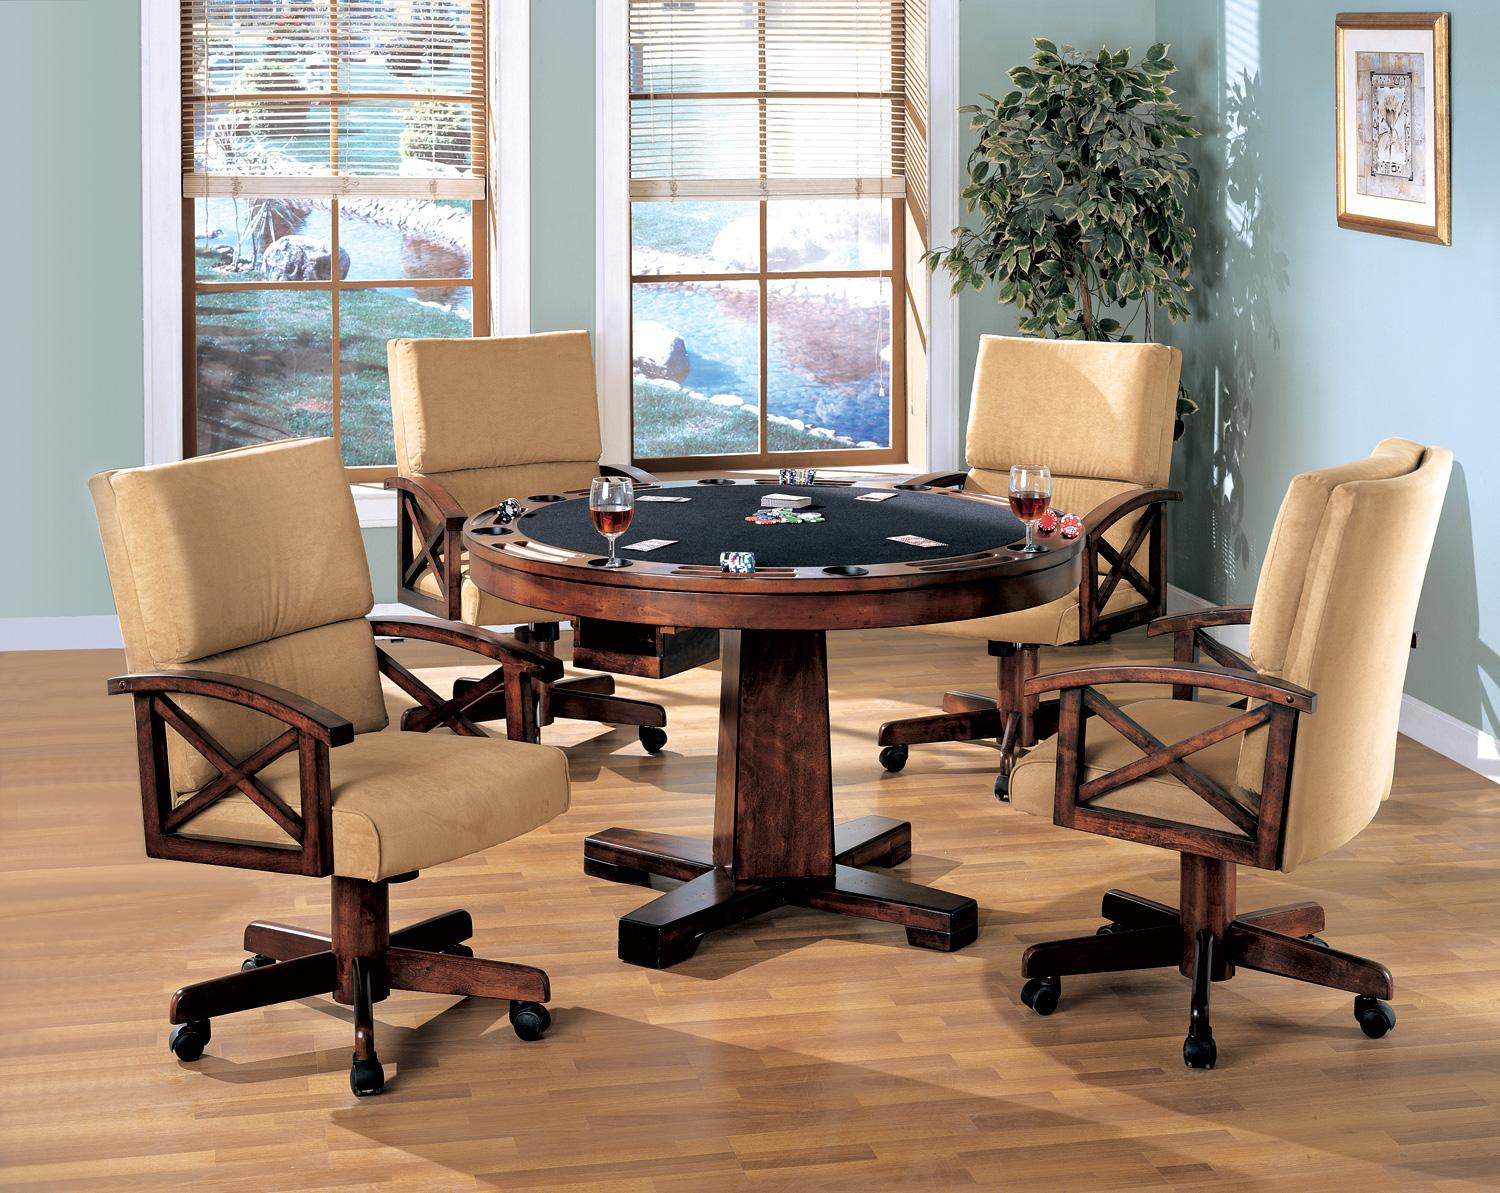 3 in 1 Game Tables for Sale| Games Table| Discount Game Tables